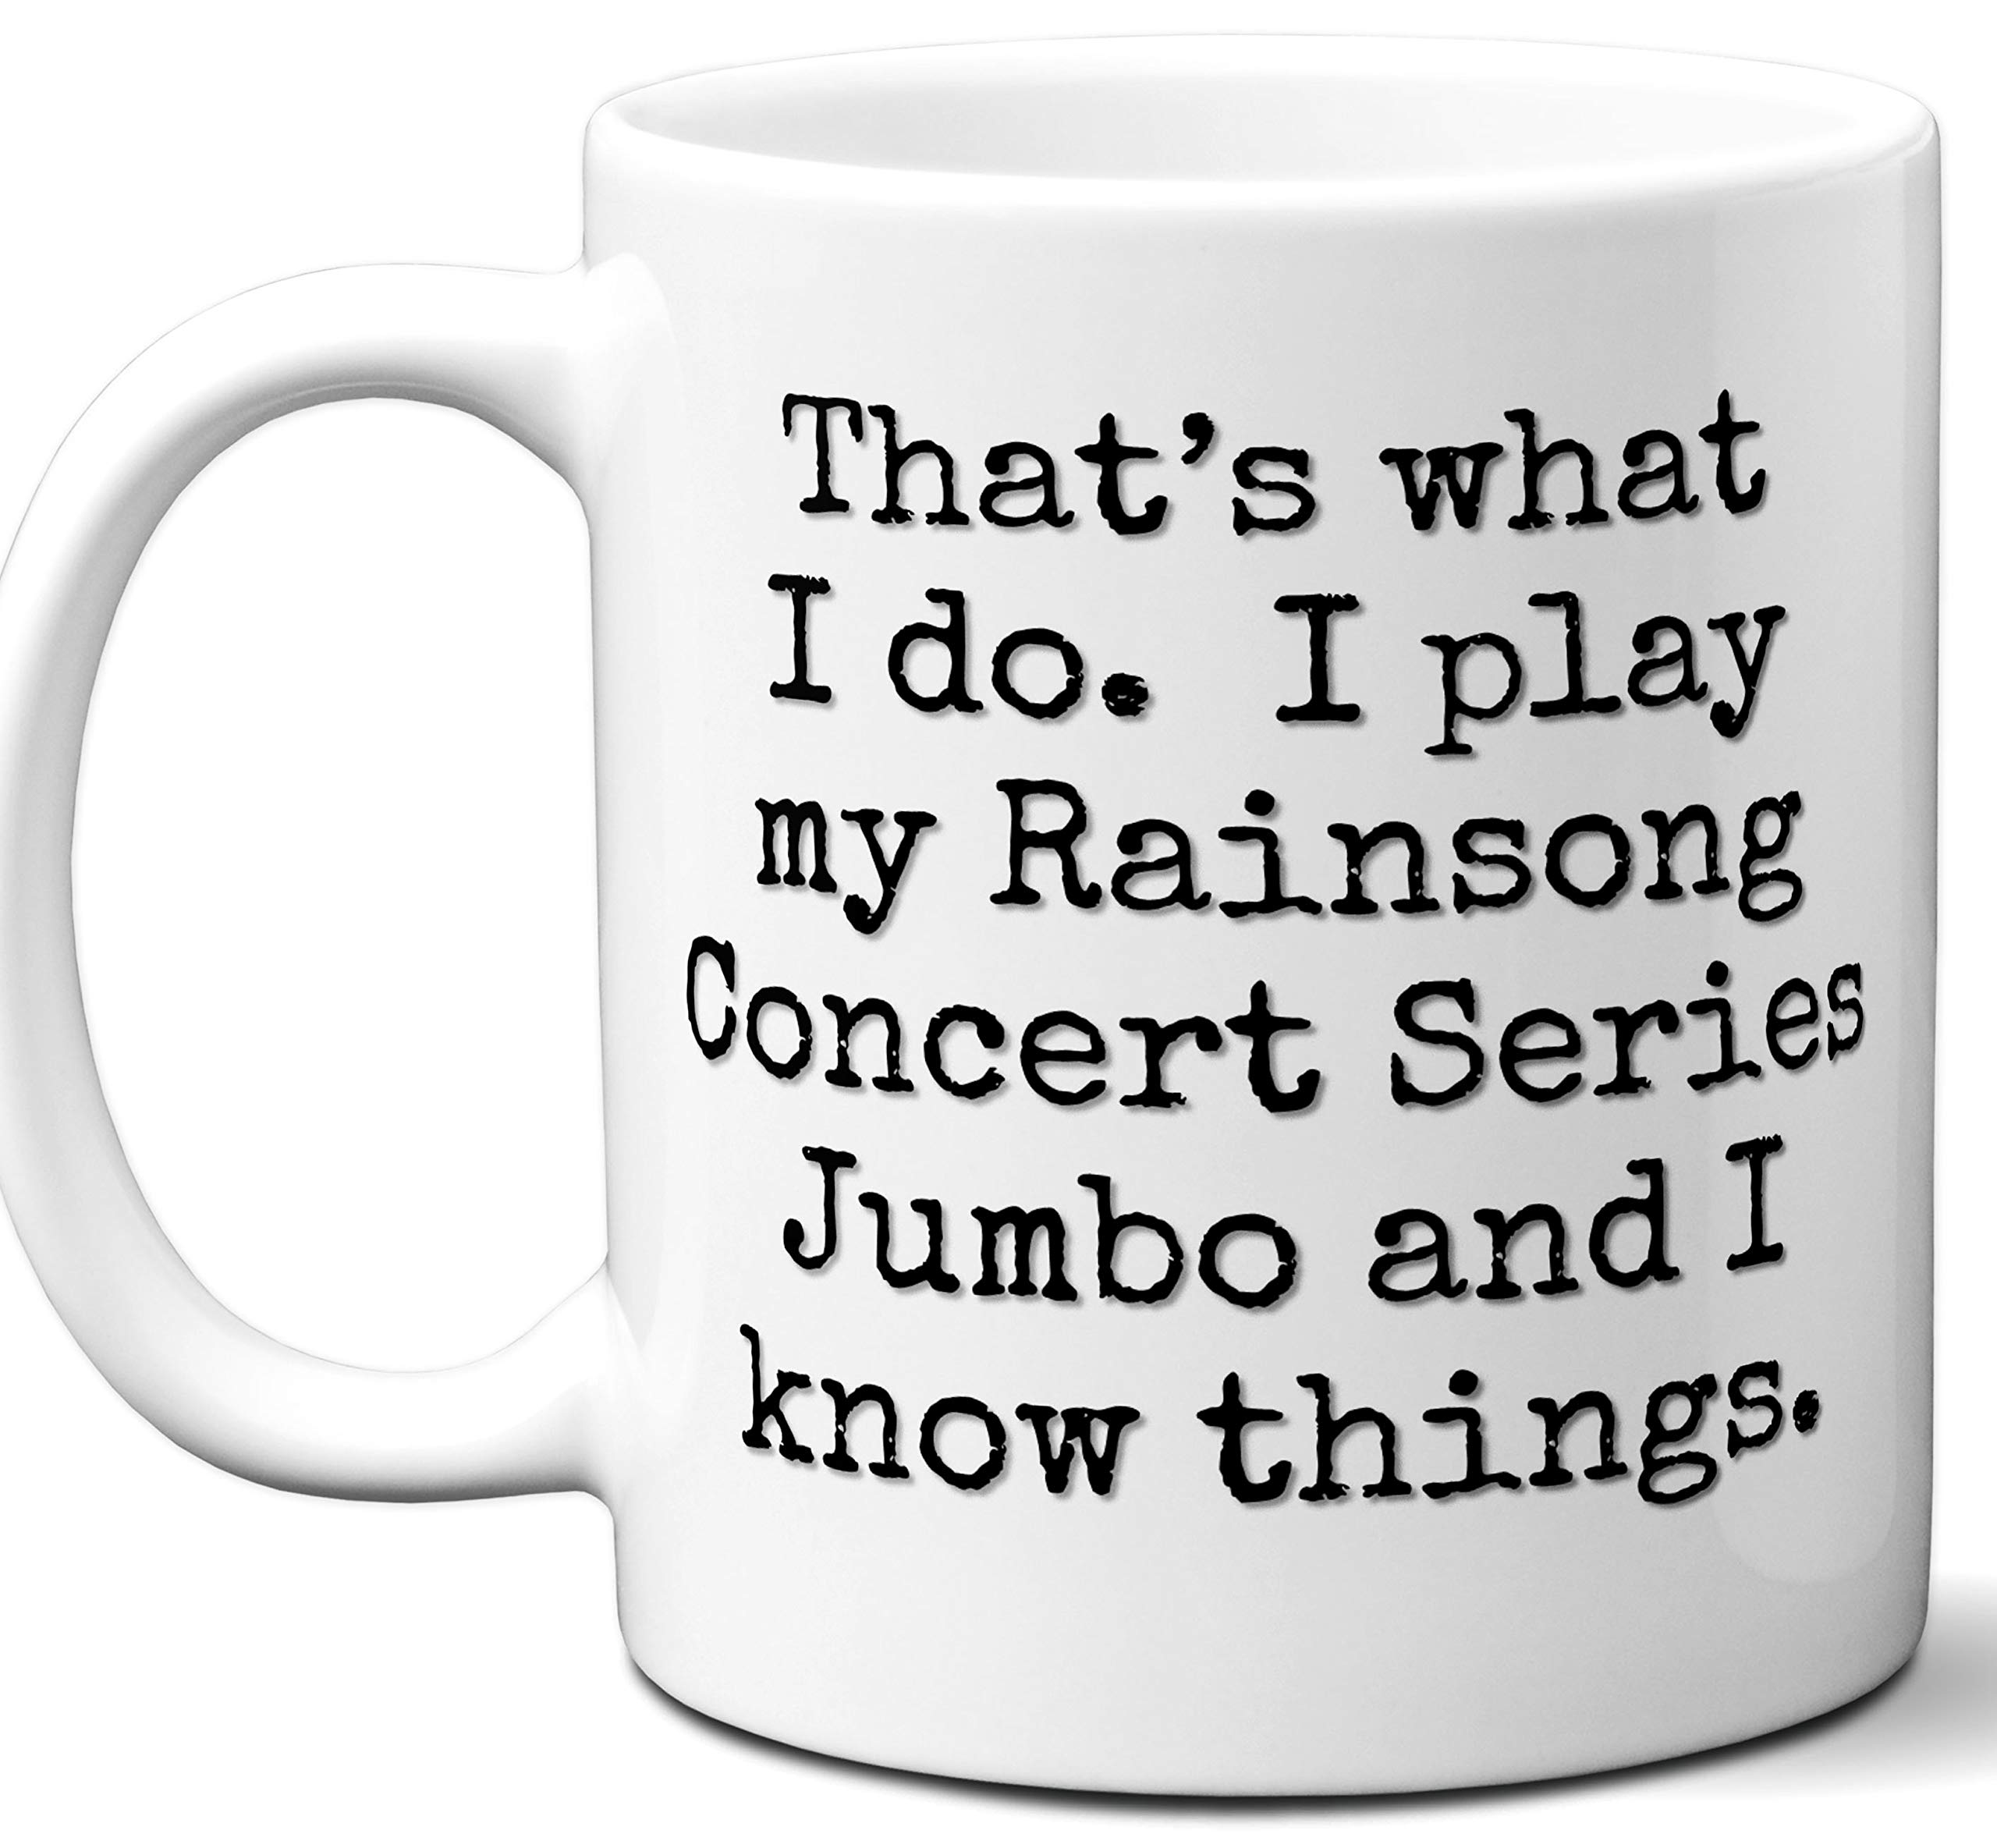 Guitar Gifts Mug. Rainsong Concert Series Jumbo Guitar Players Lover Accessories Music Teacher Lover Him Her Funny Dad Men Women Card Pick Musician Acoustic Unique by Ombura